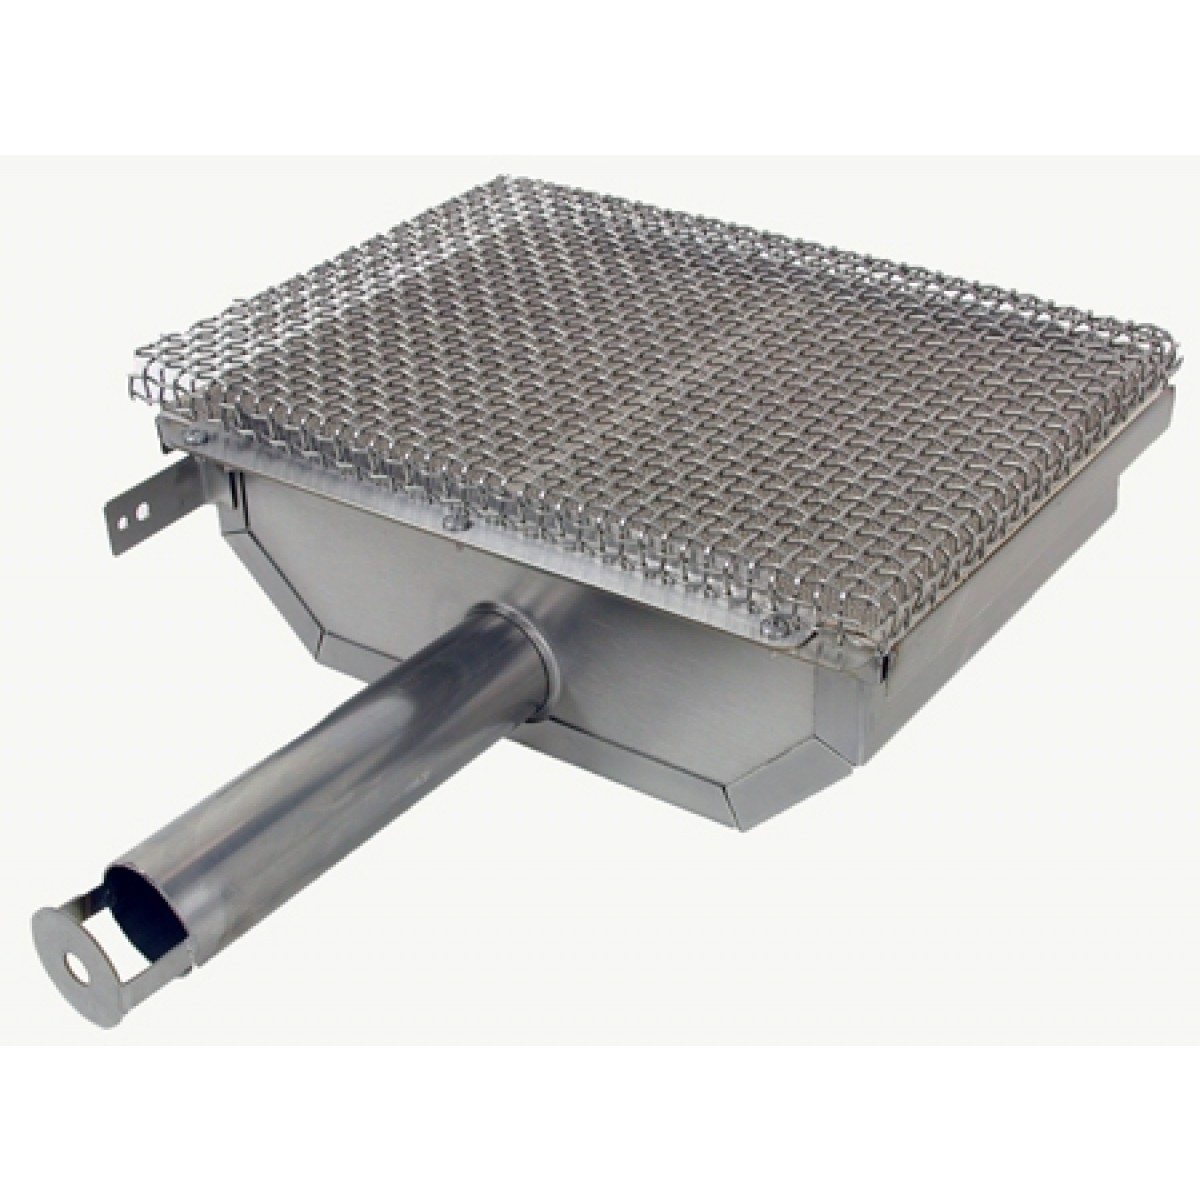 https grillwithinfrared com solaire burner for tec patio ii sterling ii sterling iii gas grills